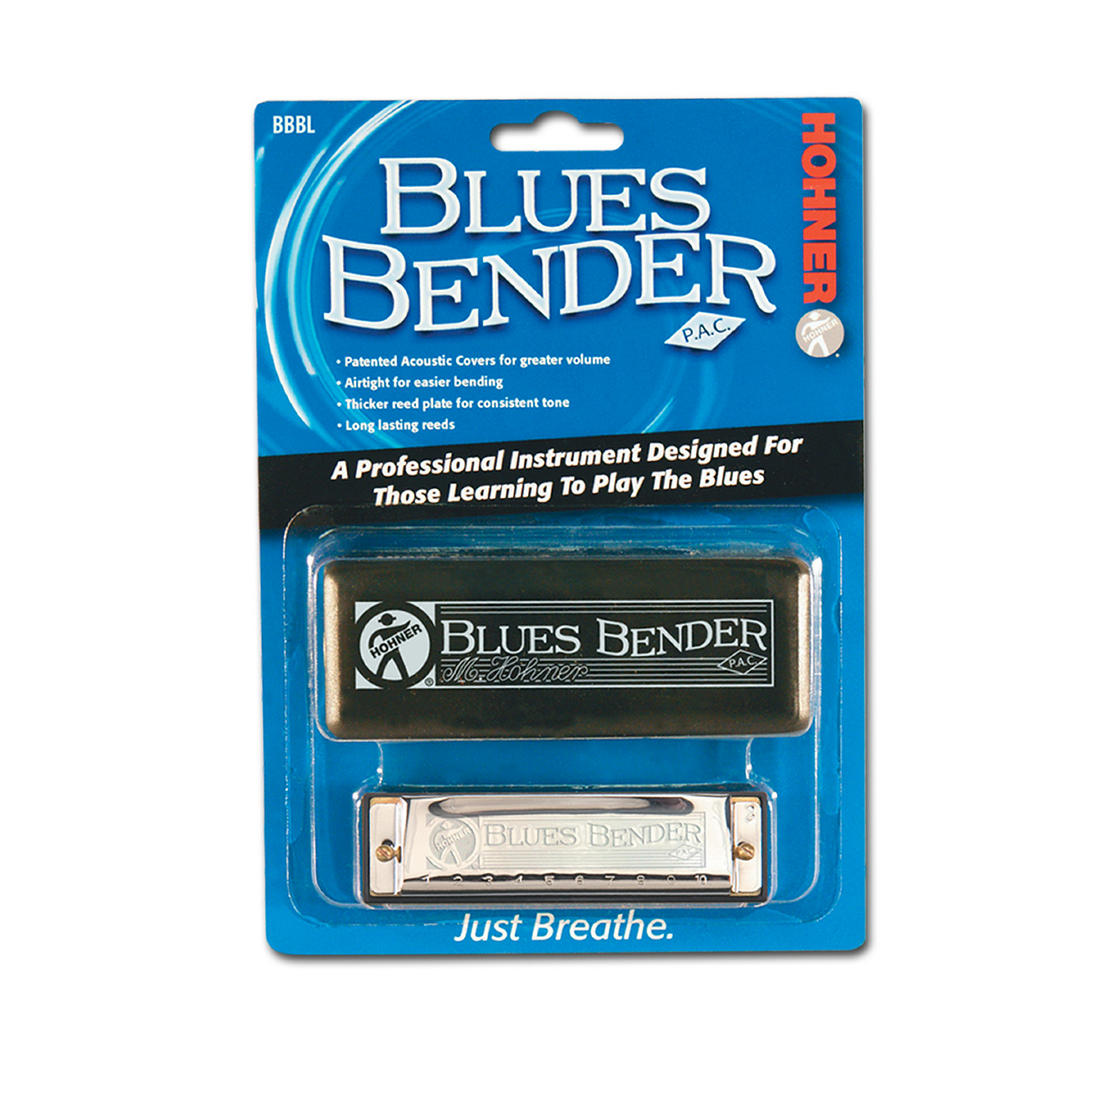 Hohner Blues Bender Key of C Harmonica